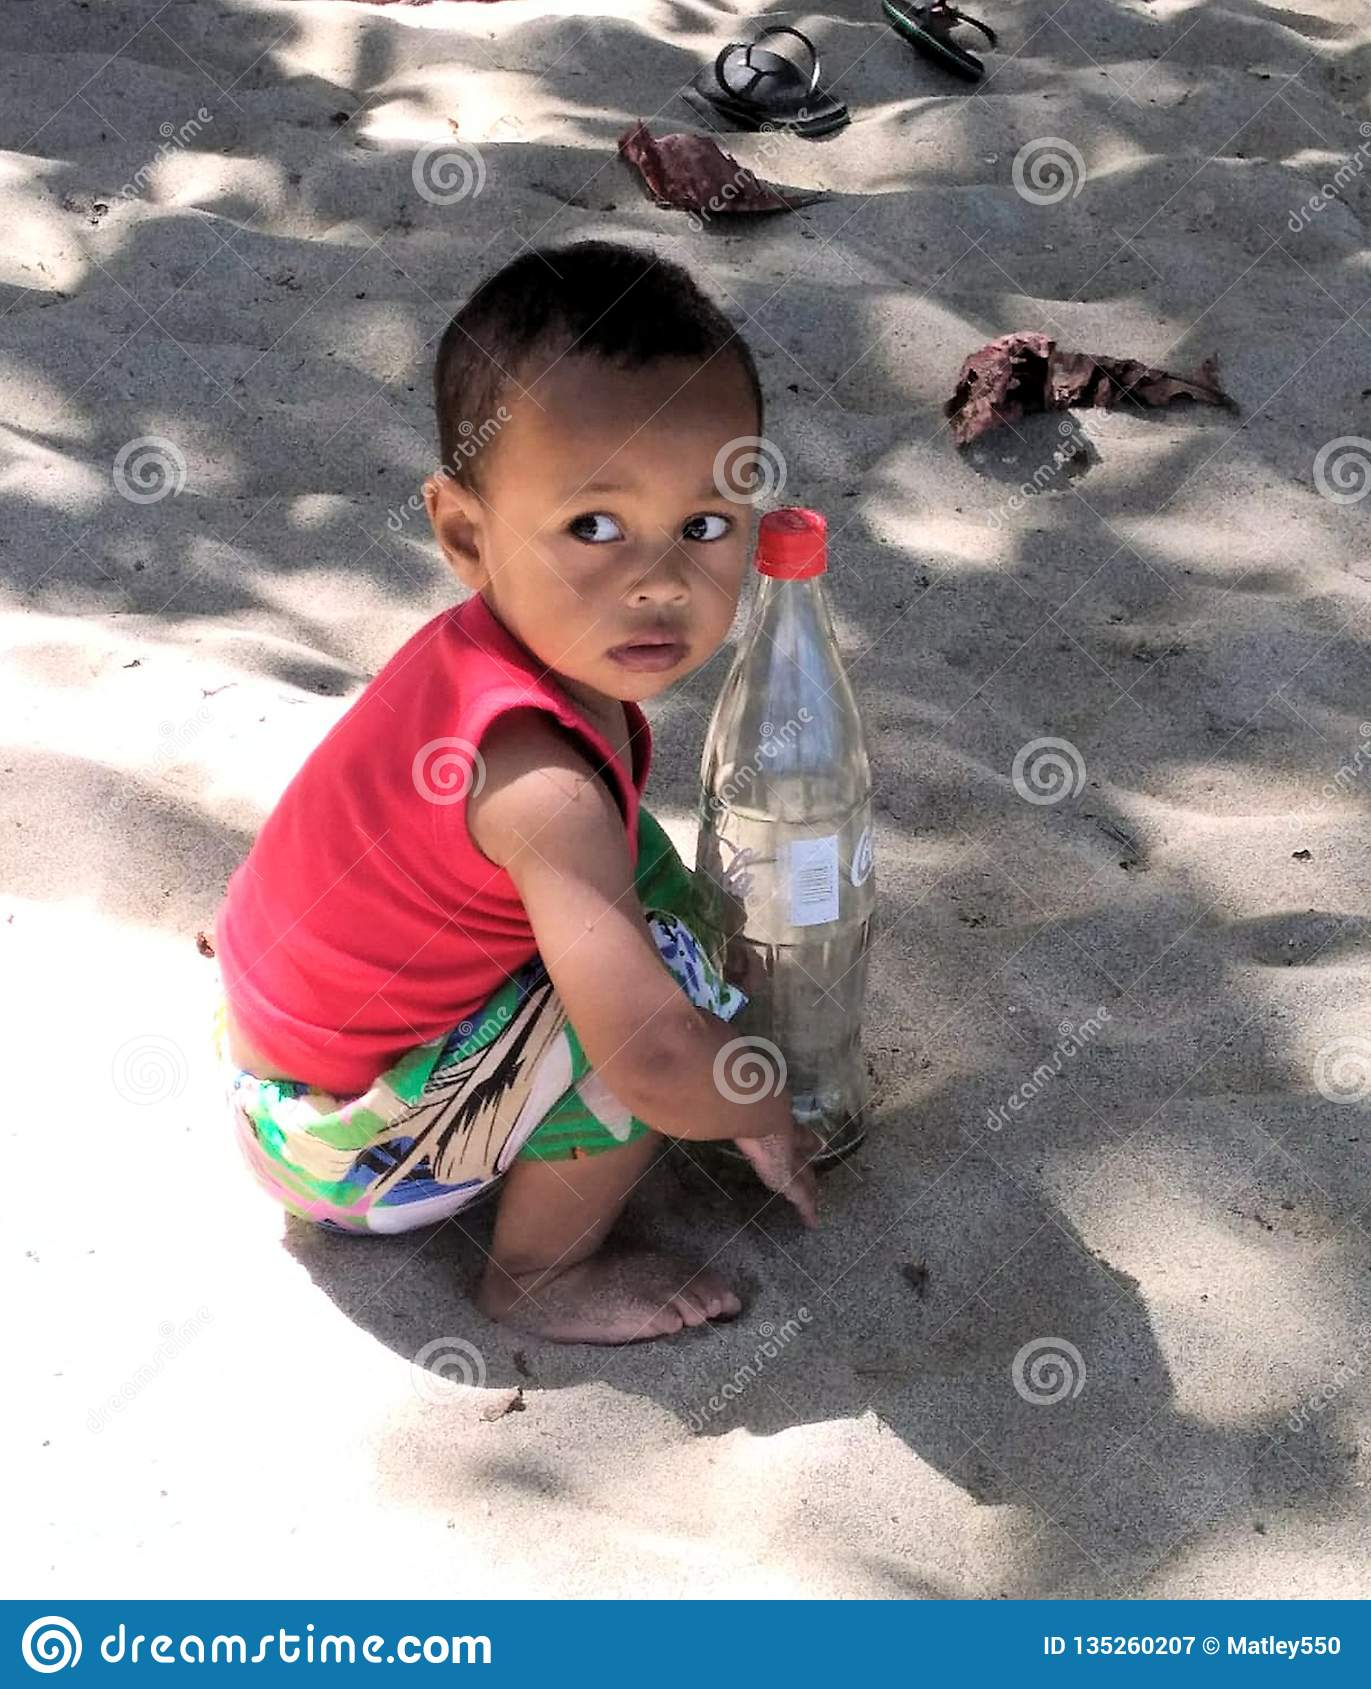 Nosy Be, Madagascar - 09/21/2018: An African child with a melancholy look holding a bottle of coke in his hands